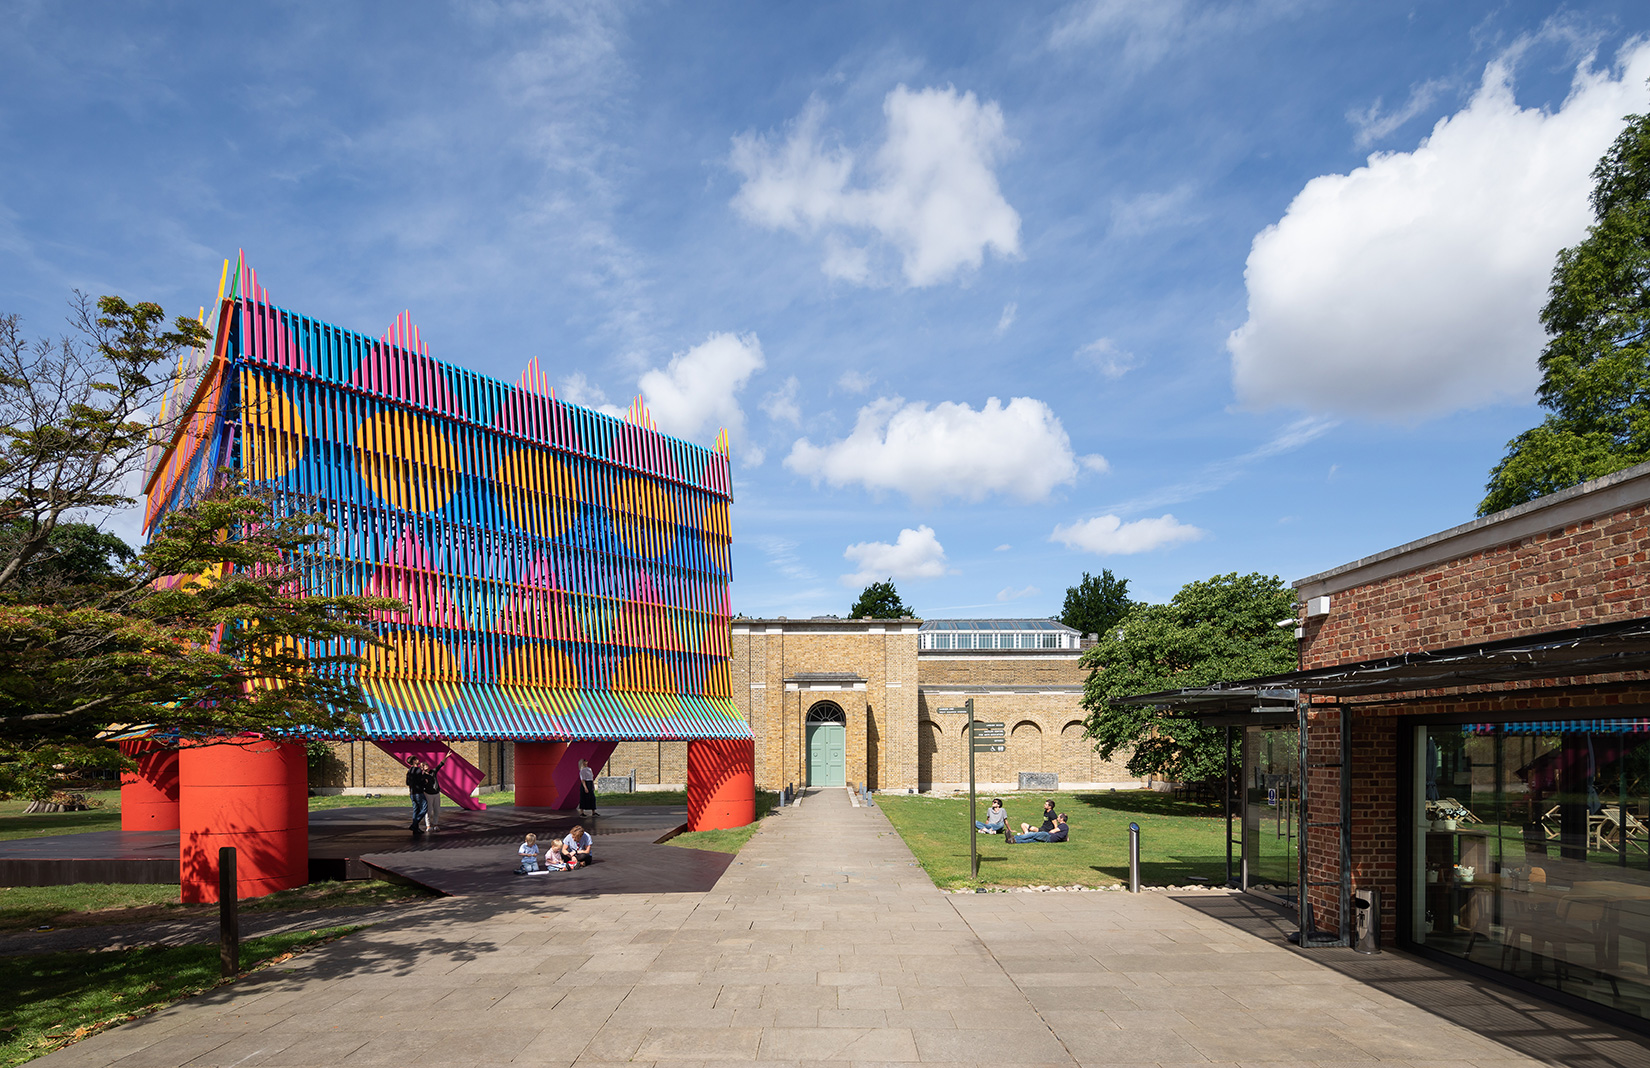 London's Dulwich Pavilion is a colourful 'party hat' in London